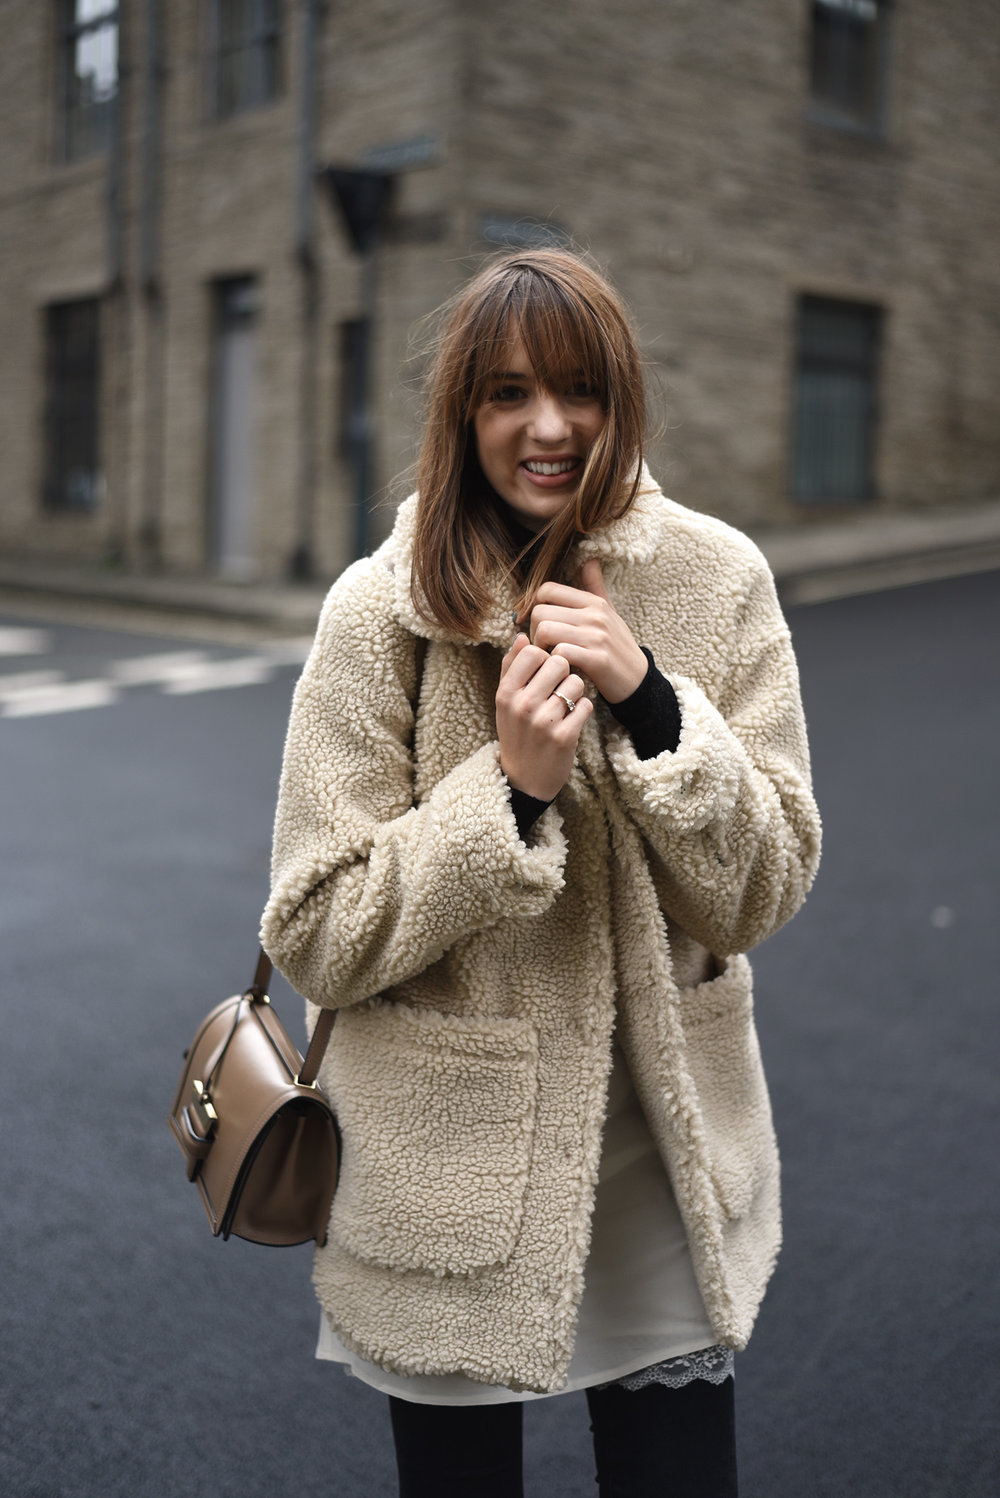 The Teddy Coat — SHOT FROM THE STREET